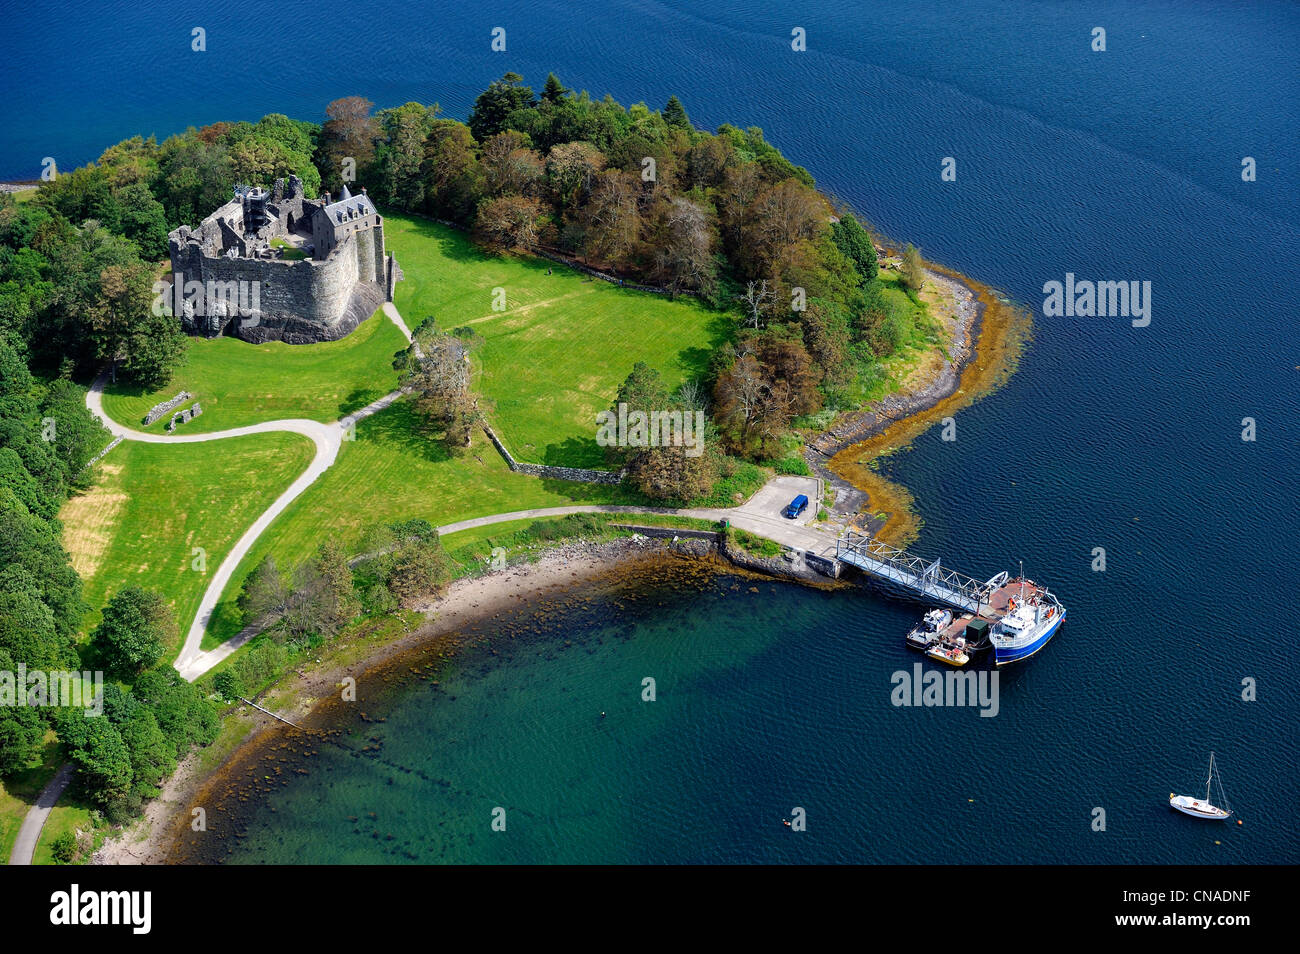 United Kingdom, Scotland, Highland, Oban, Dunollie Castle of Clan MacDougall (aerial view) - Stock Image